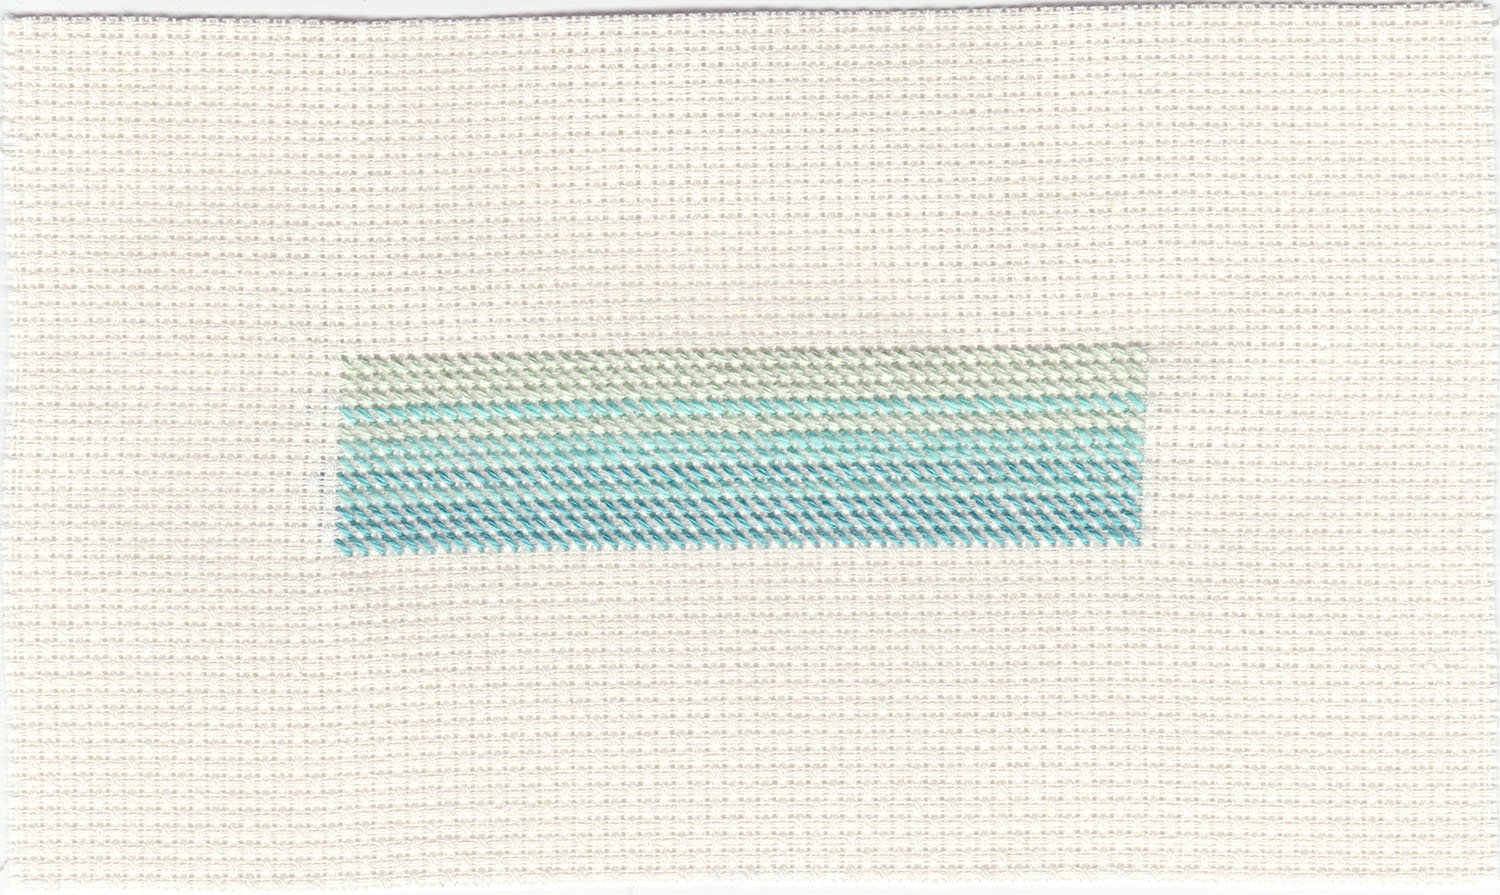 Colour Study in 576 Diagonal Stitches_4A_web.jpg